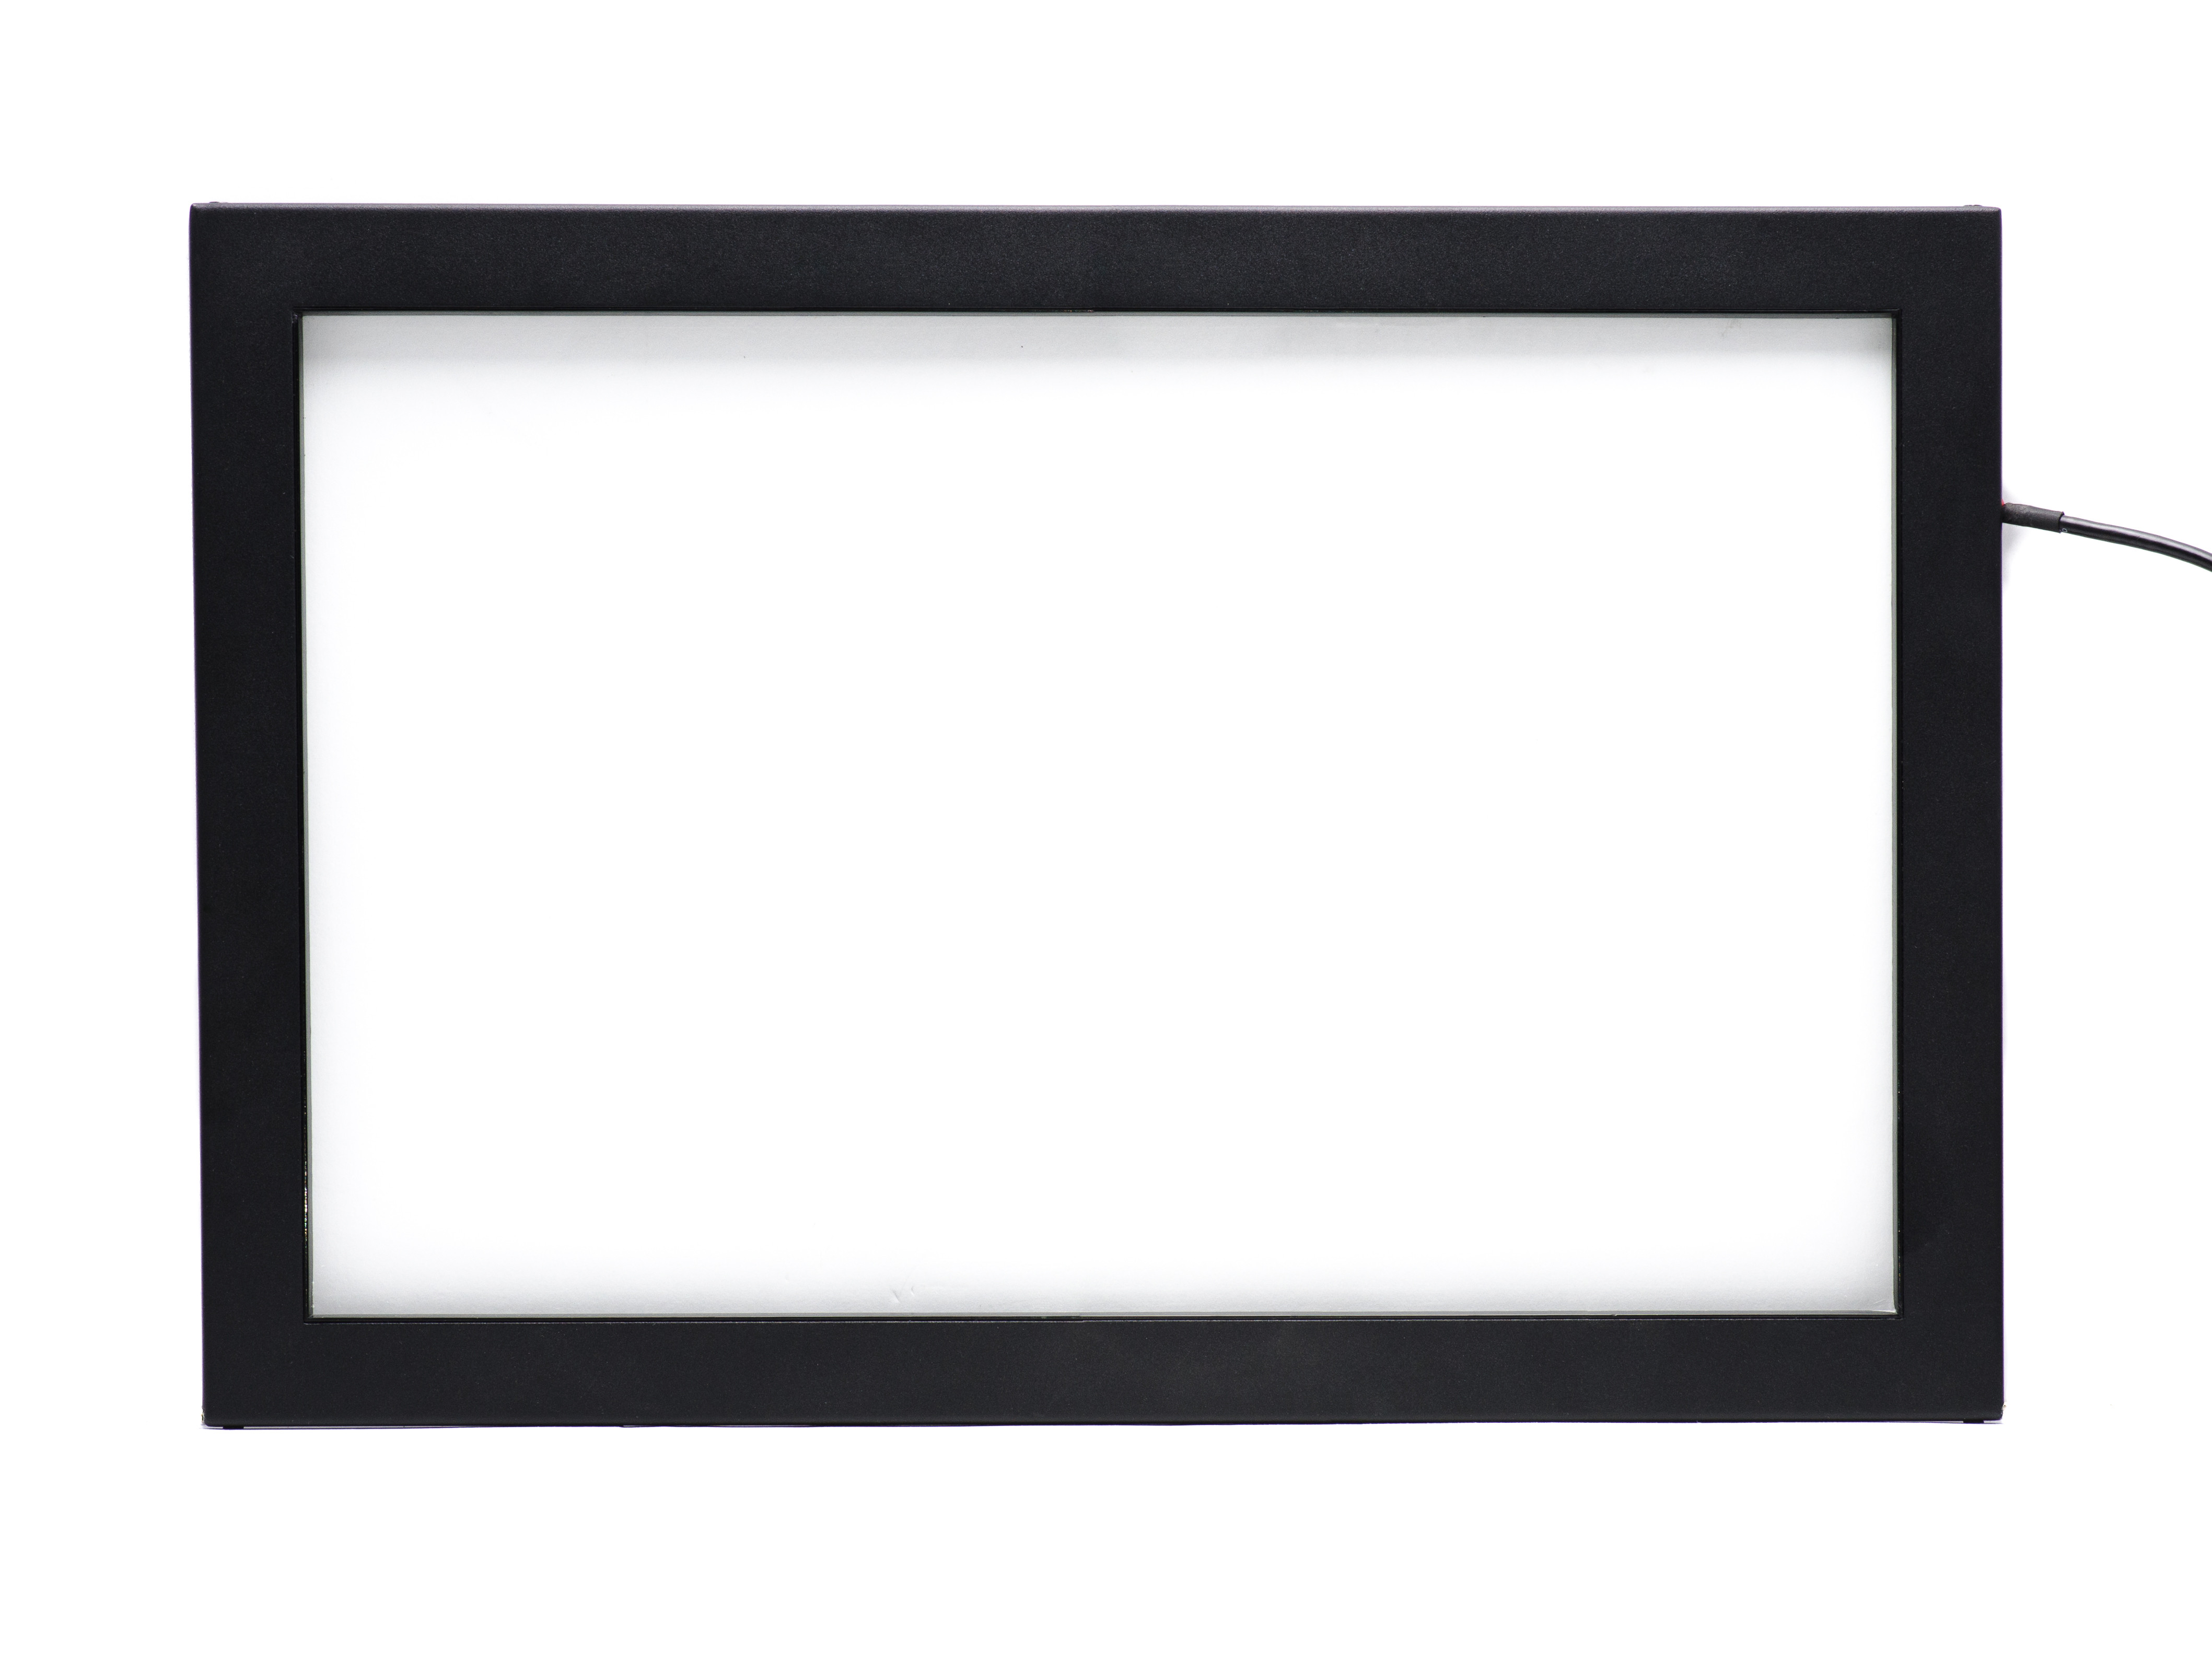 """TOUCH FRAME WITH GLASS KEETOUCH 15"""" KCI-U0150M3-R3G-01"""